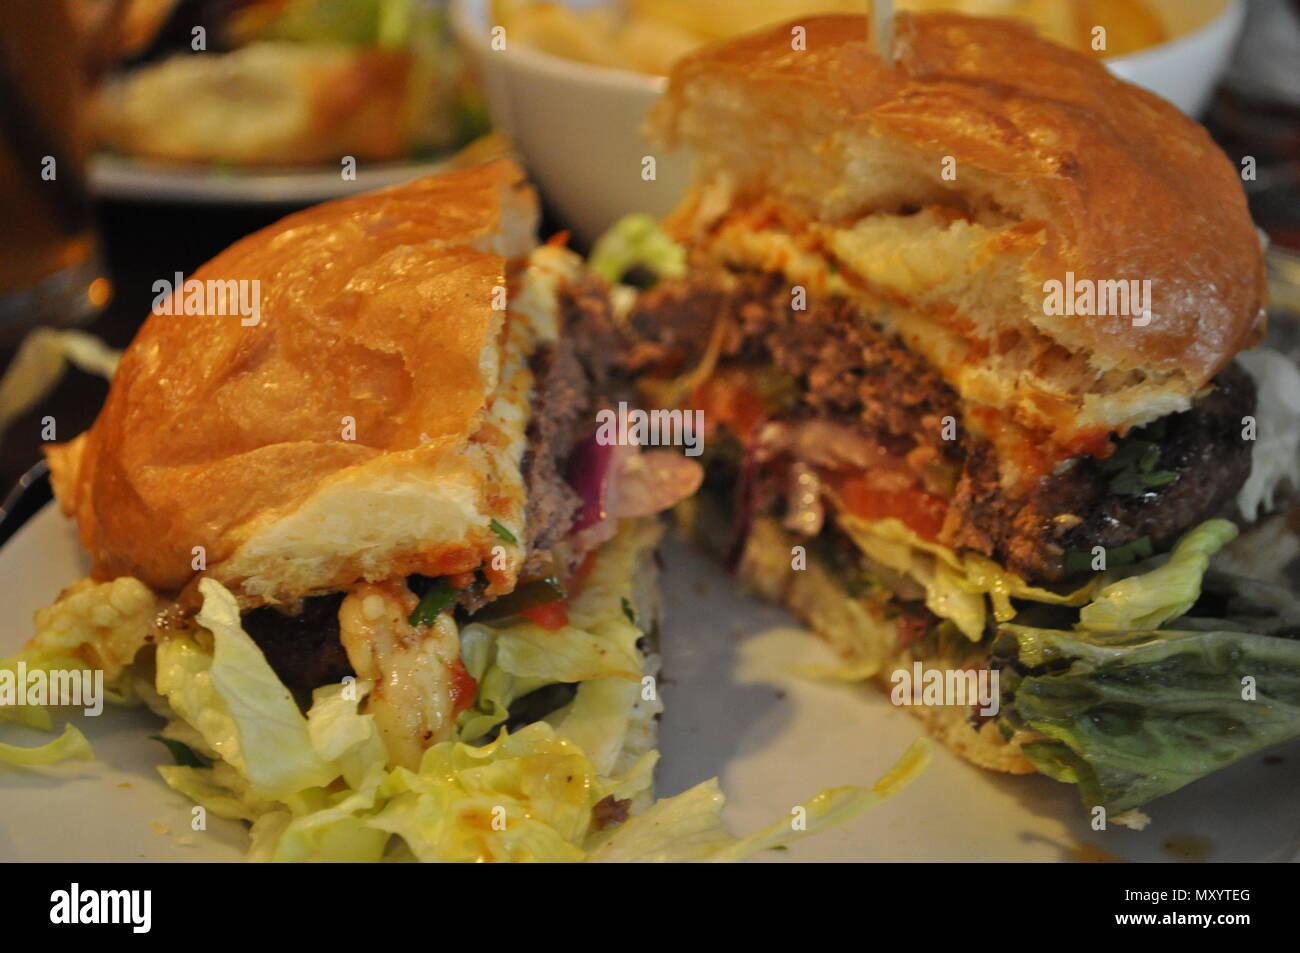 Glorious burger - Stock Image